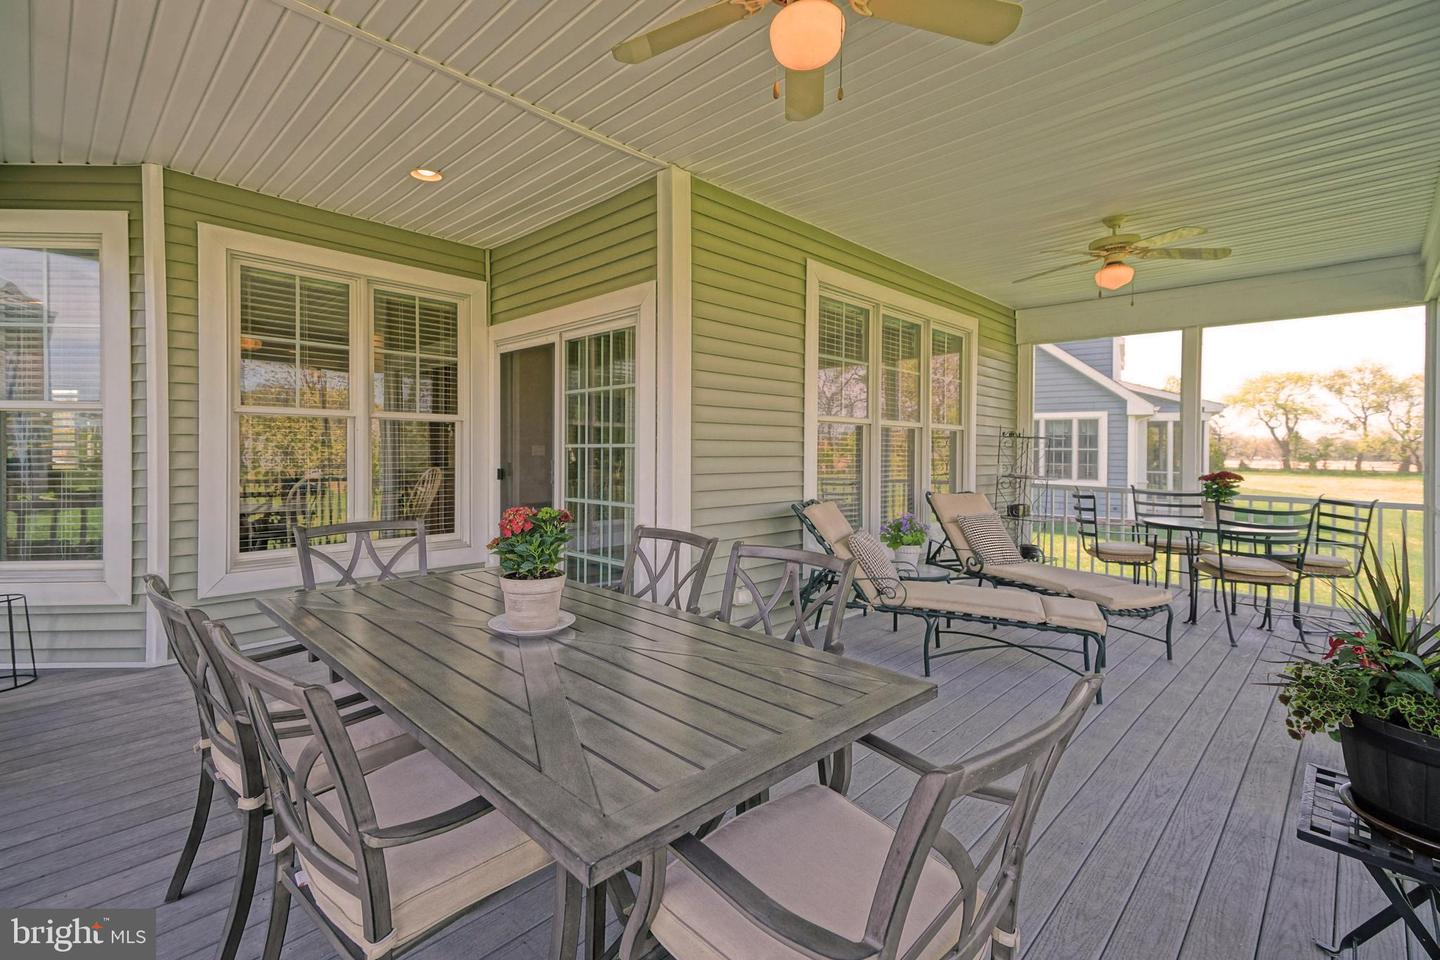 DESU139128-301667384795-2019-08-05-10-43-56 35222 Overfalls Dr N | Lewes, DE Real Estate For Sale | MLS# Desu139128  - Lee Ann Group